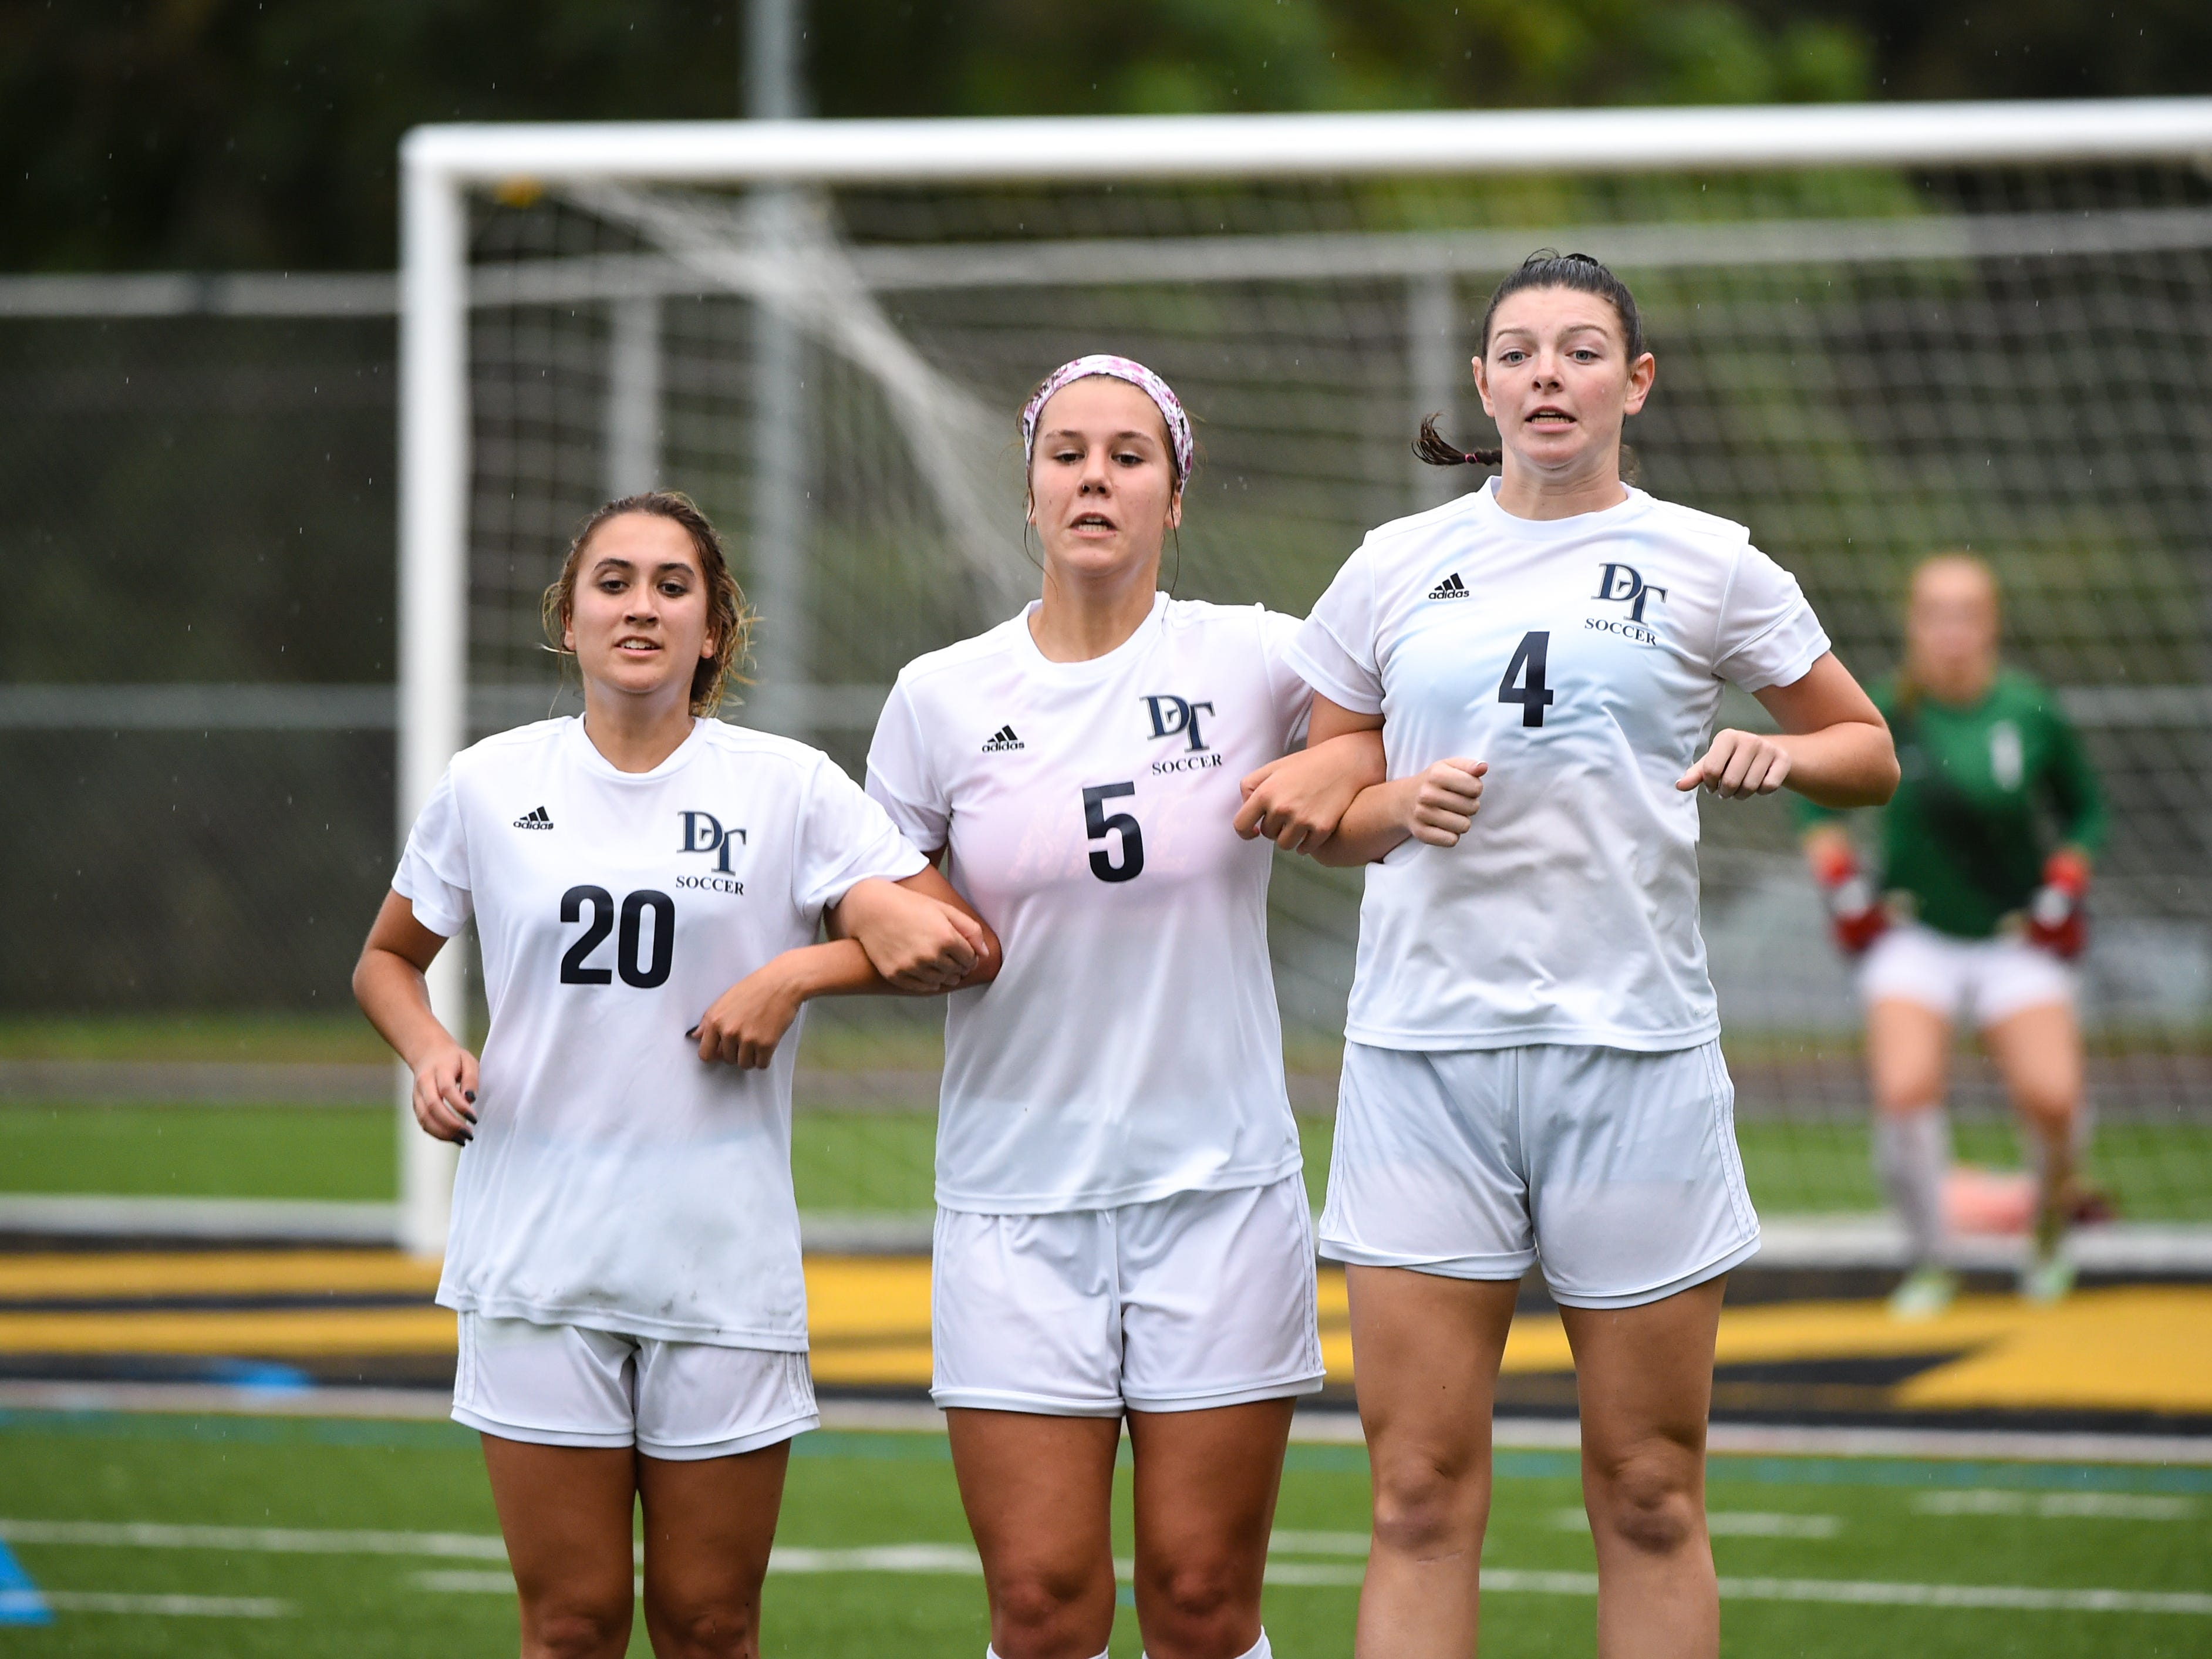 Jordan Lese (20), Emma Schmitt (5) and Skyler Wise (4) set up the wall during the girls soccer game between Red Lion and Dallastown, October 11, 2018. The Lady Lions beat the Wildcats 4-0.